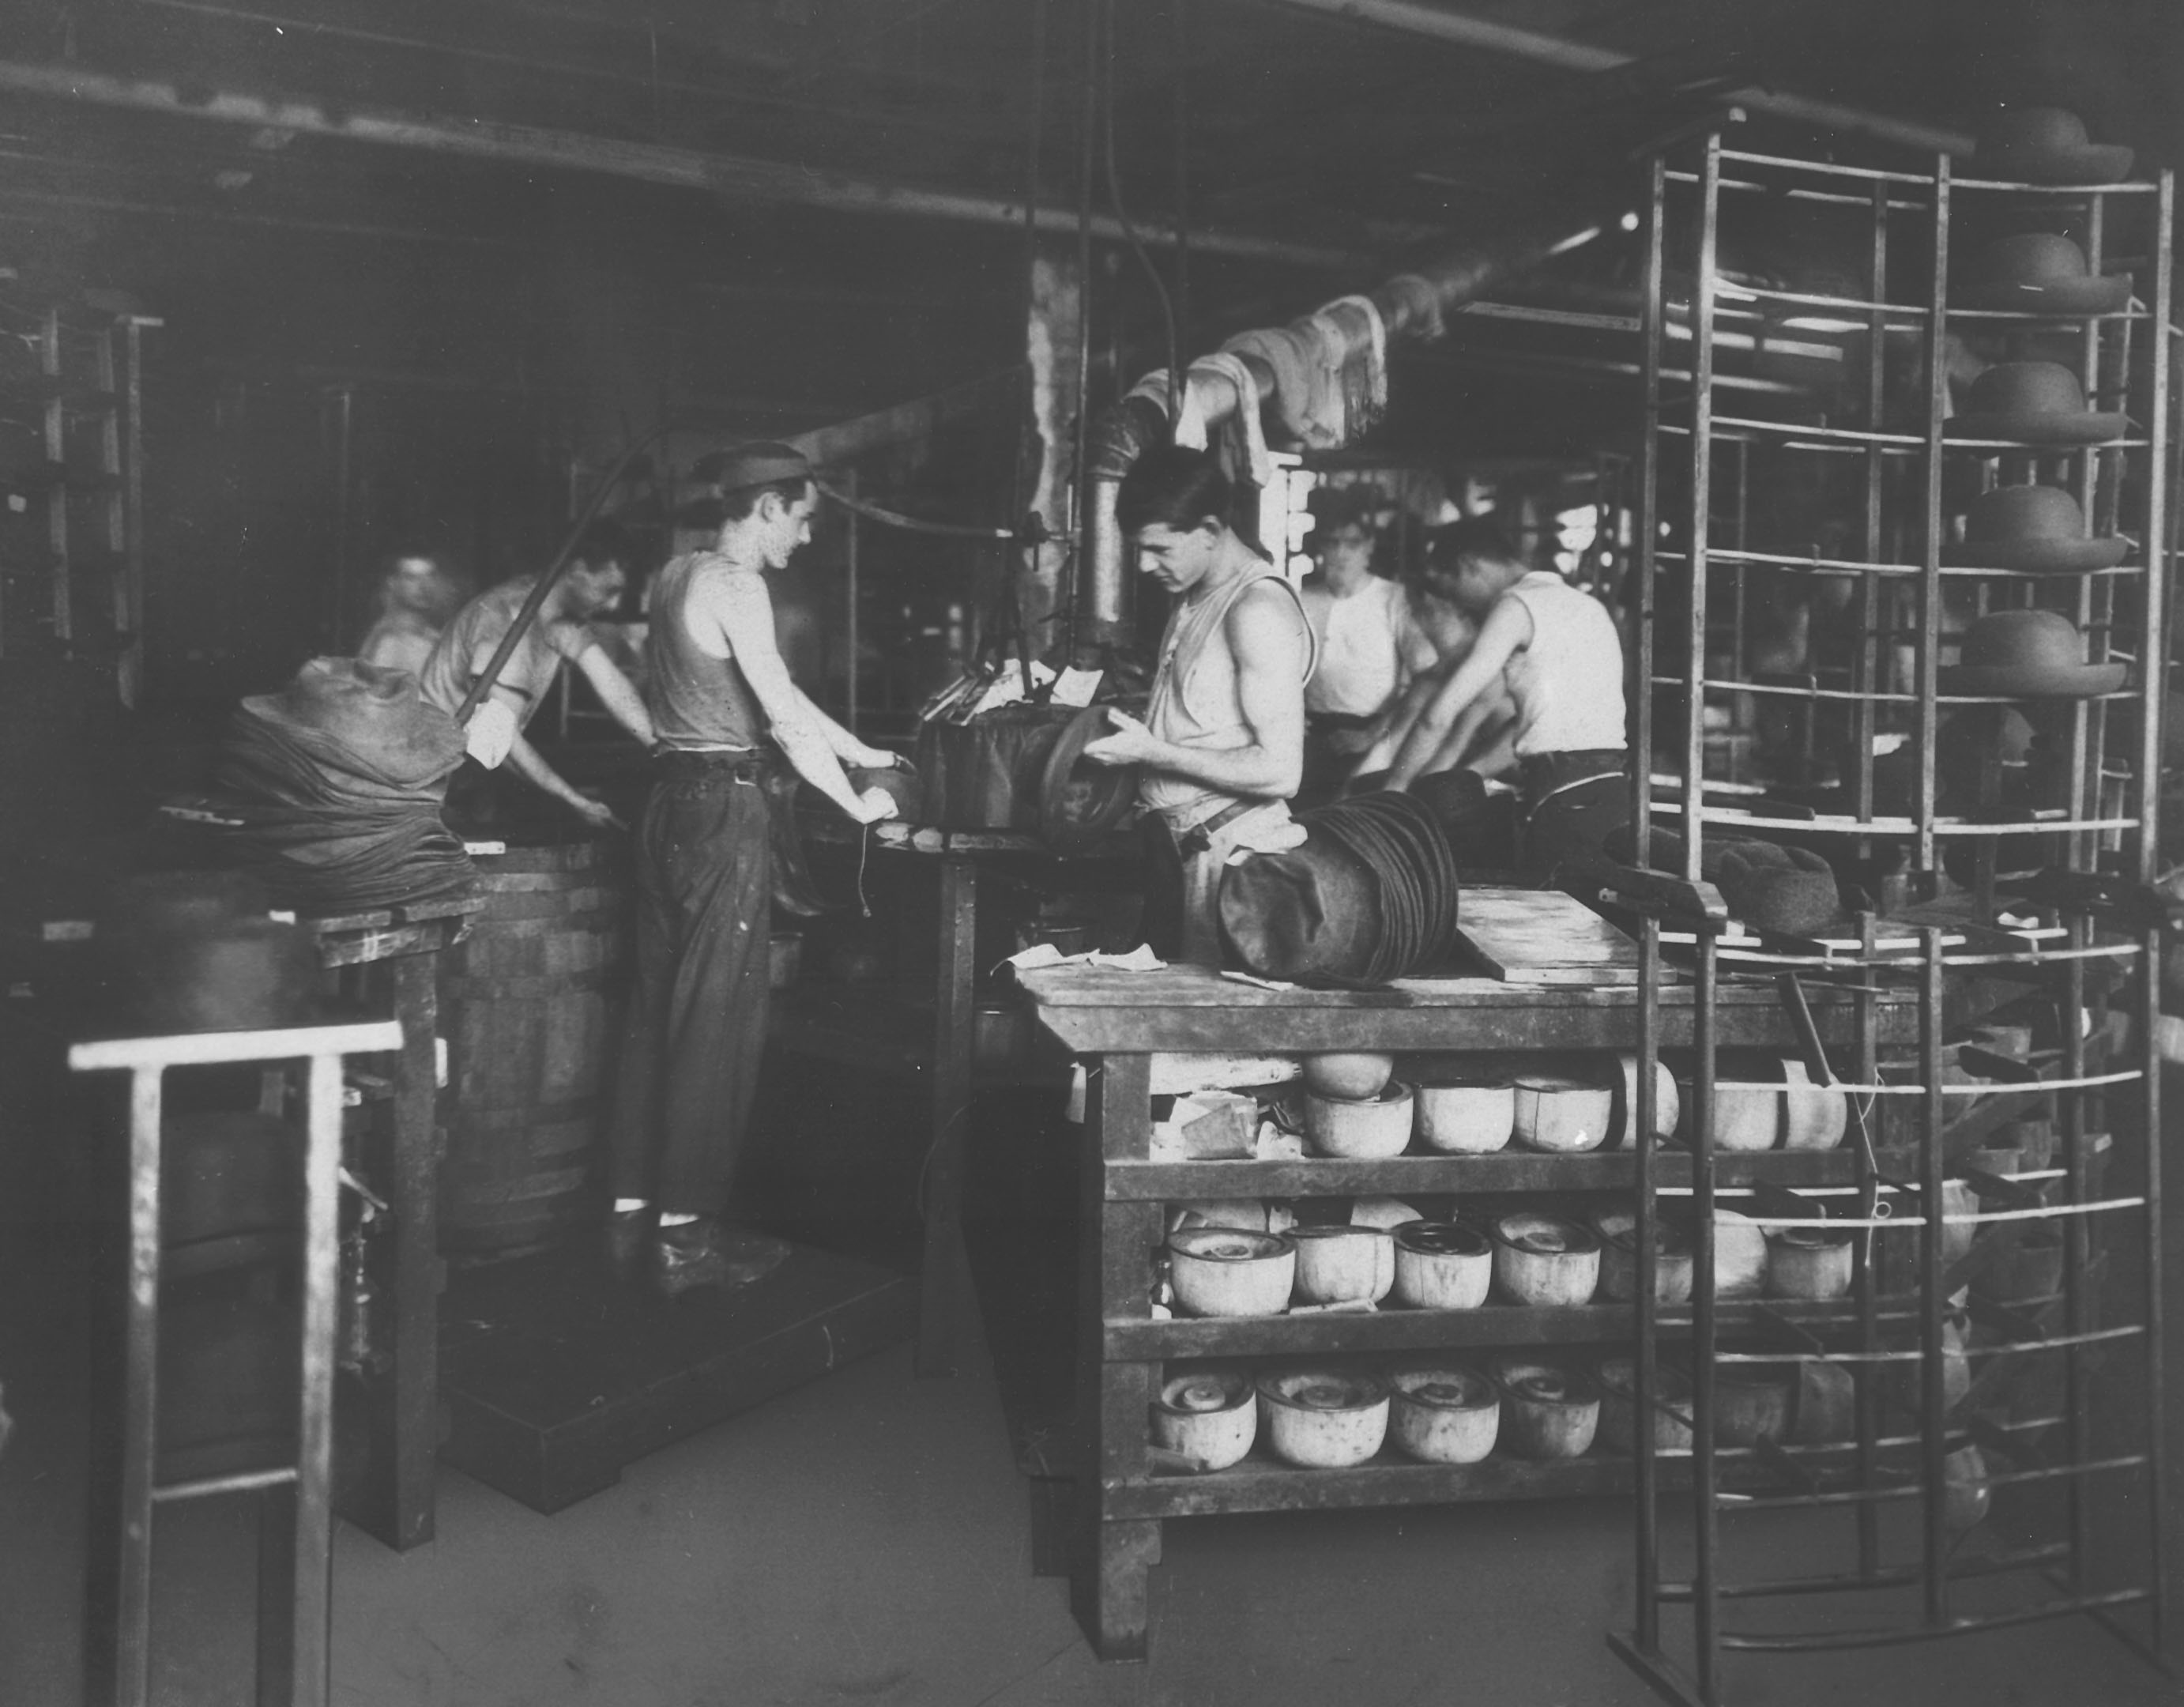 80bafc418e443 Workers finishing hats in the Sterson factory.